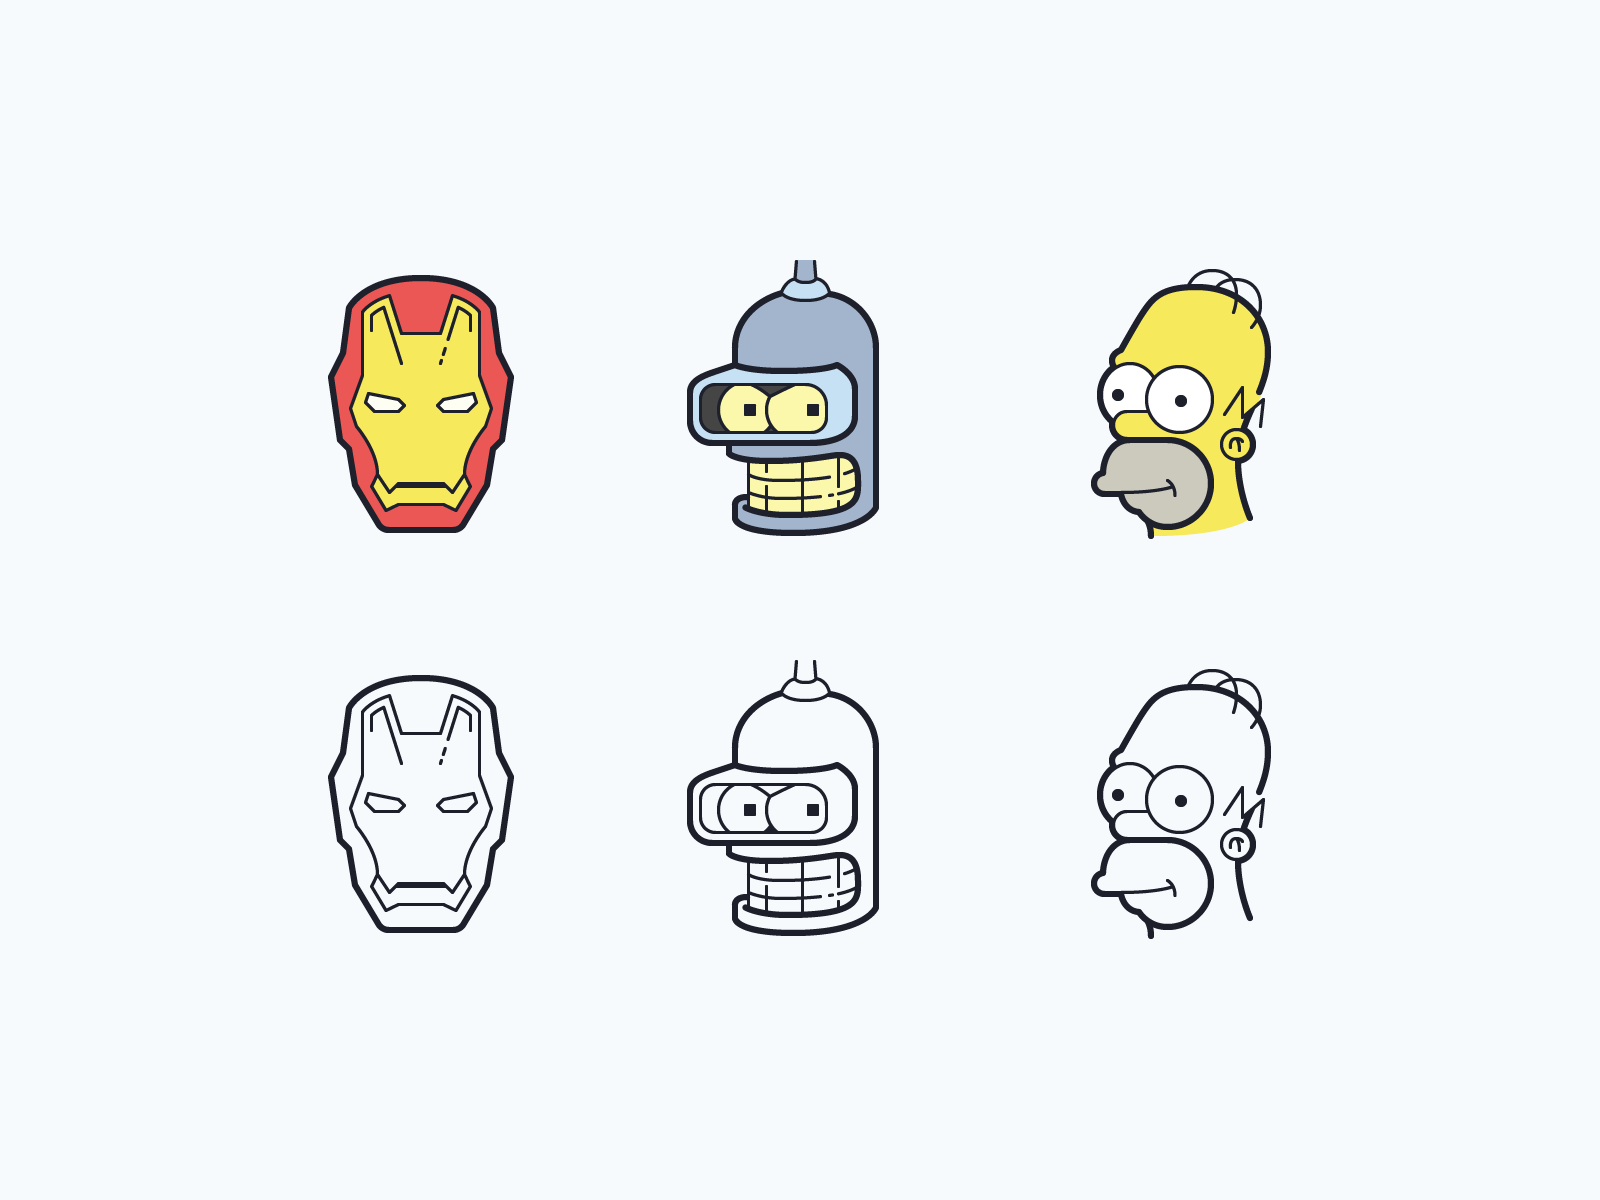 Icons8 hand drawn characters